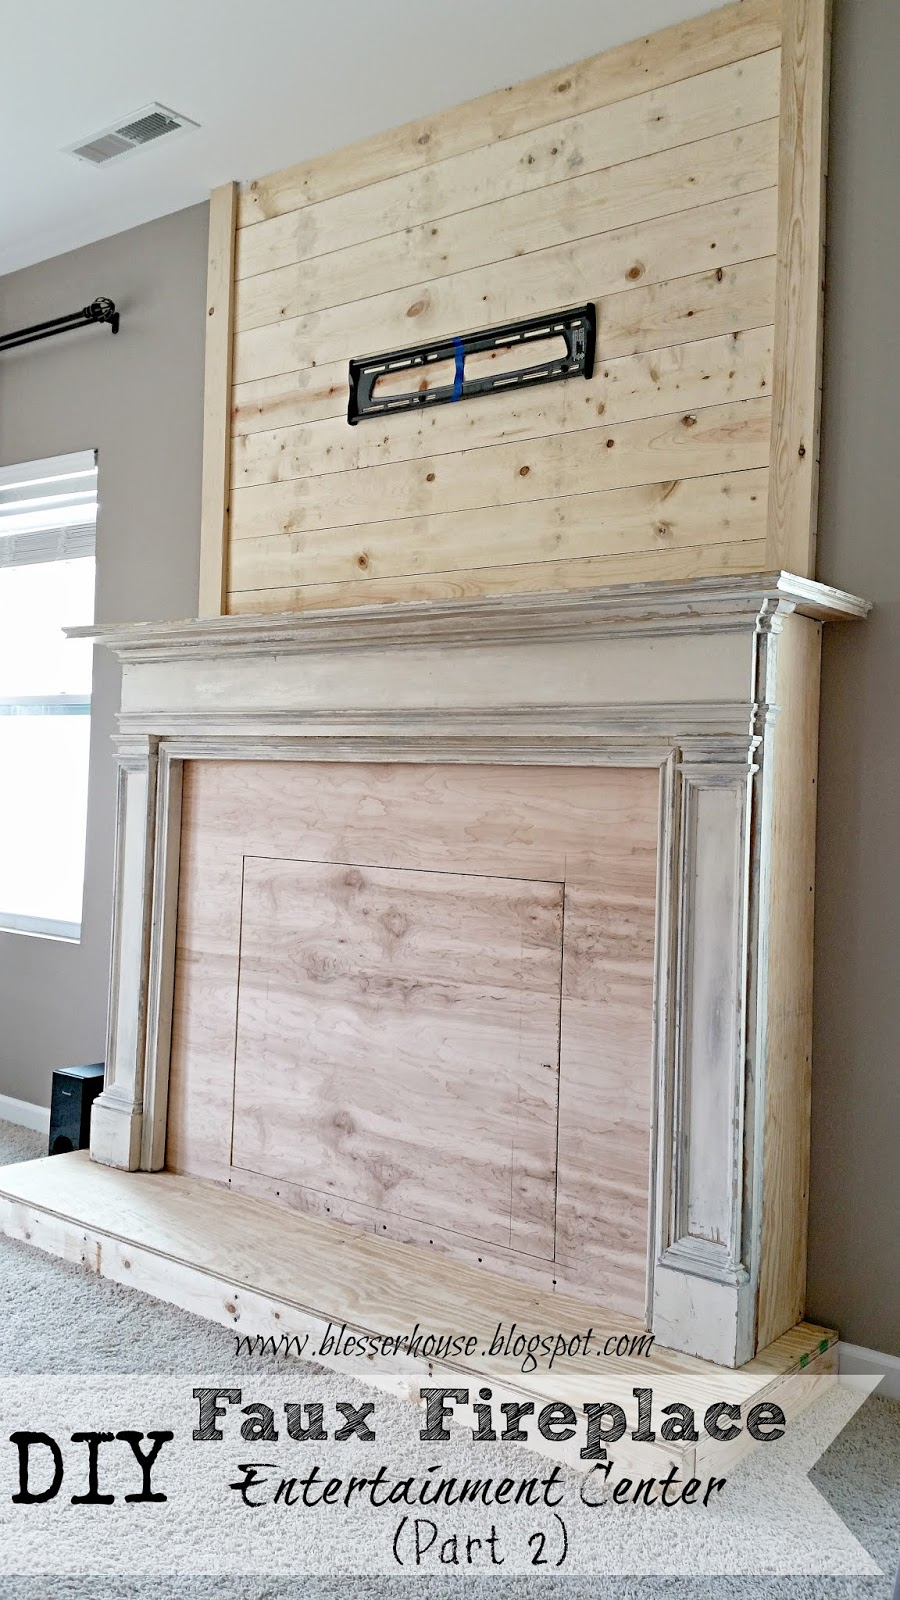 diy faux fireplace entertainment center part two bless. Black Bedroom Furniture Sets. Home Design Ideas